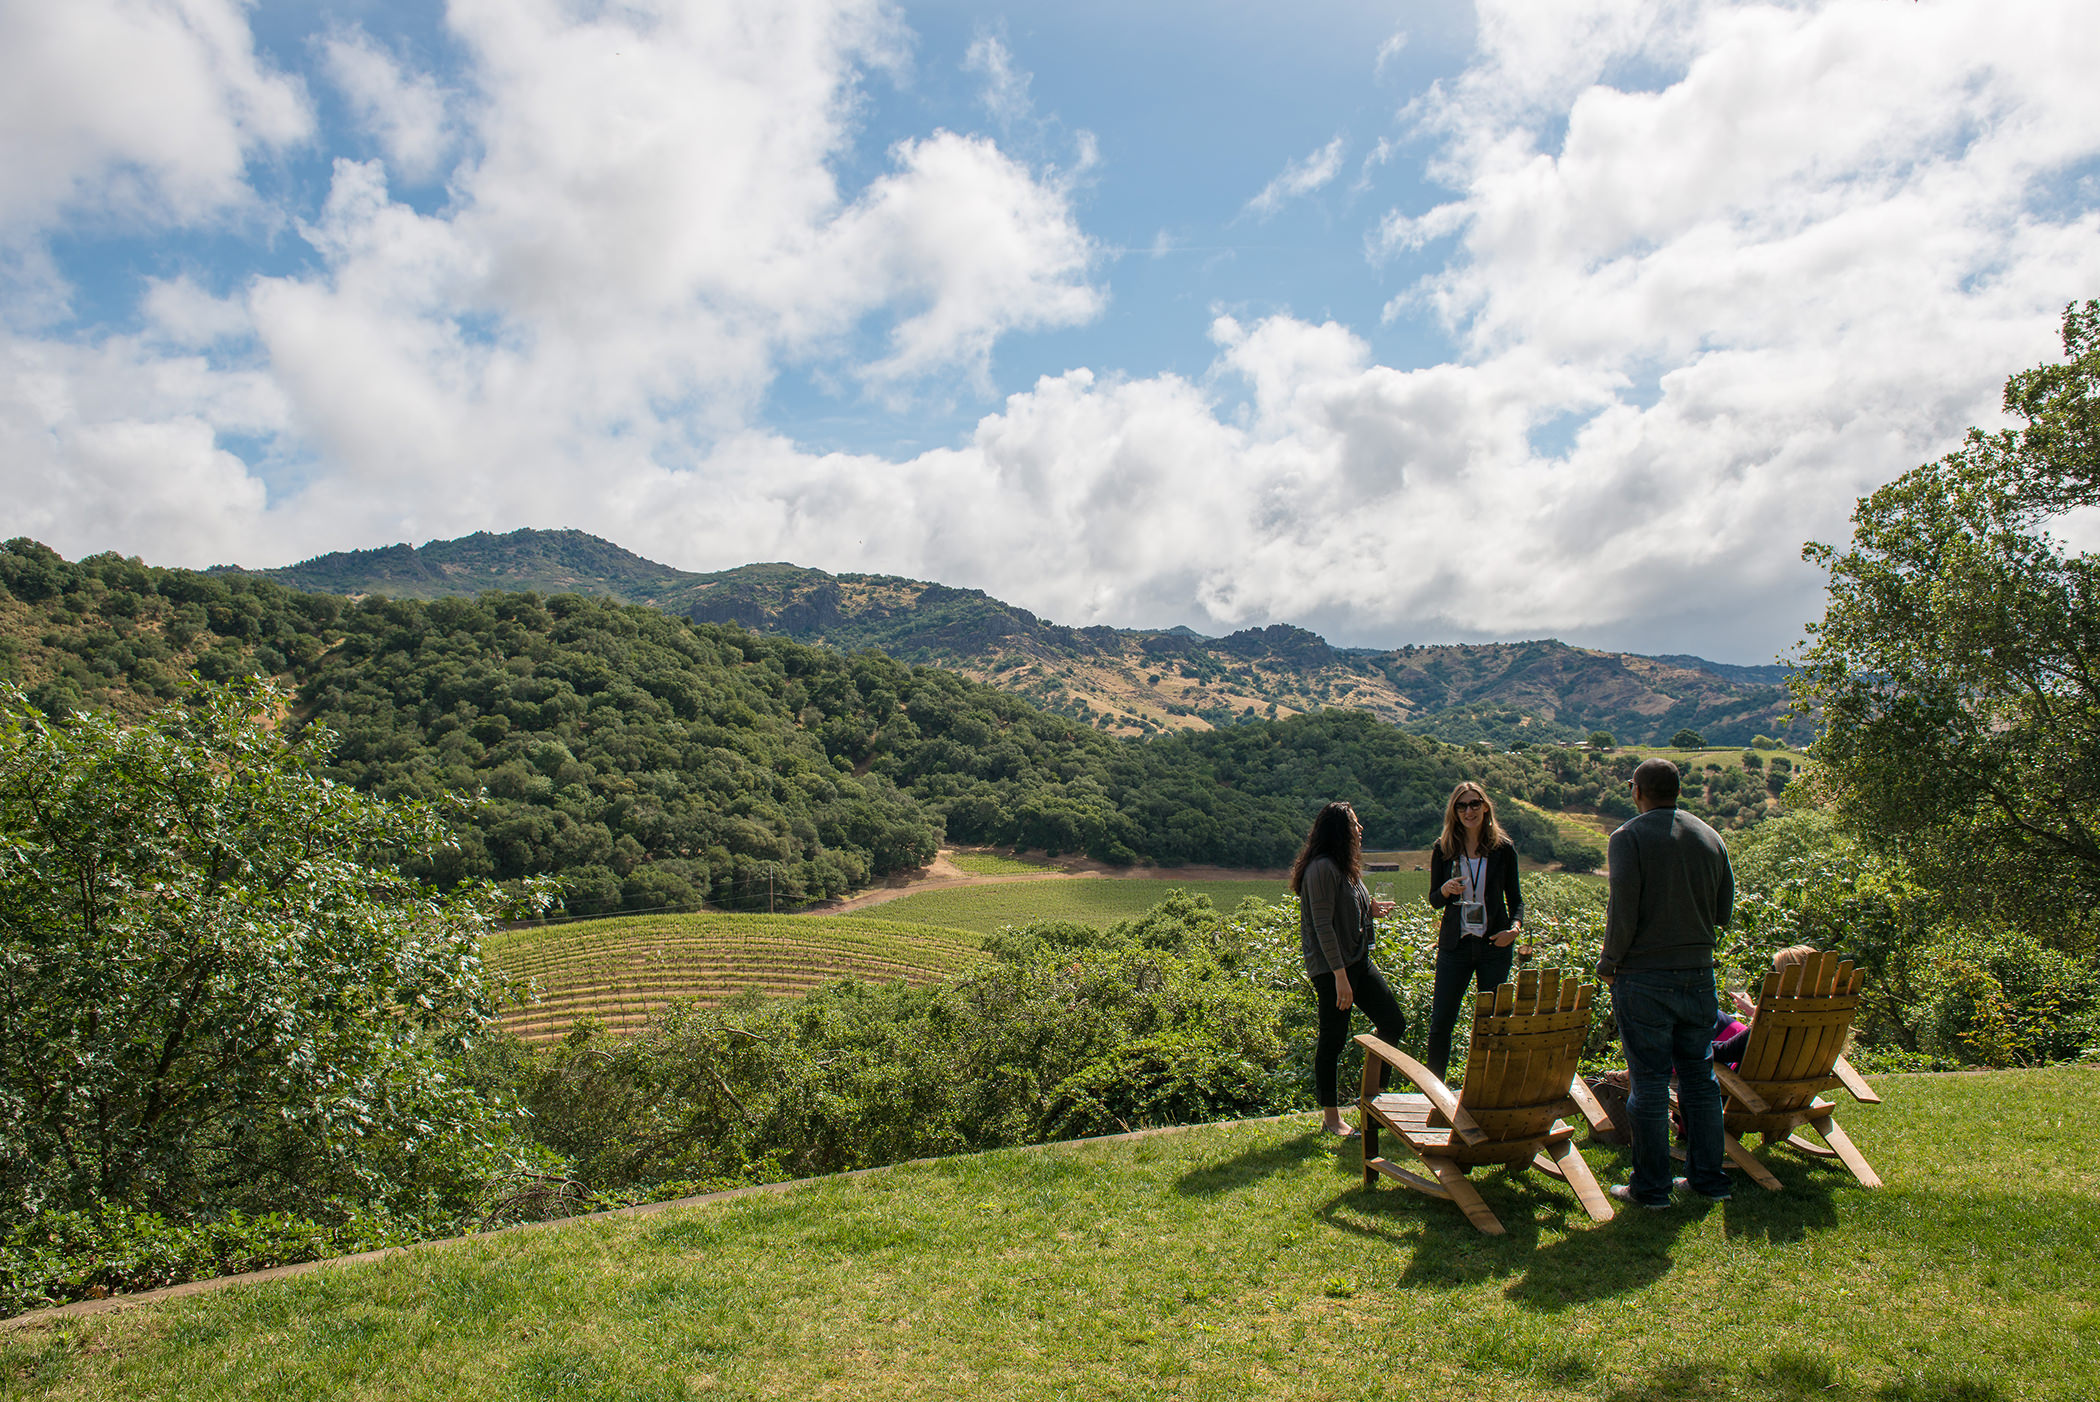 a small group of four people stand on a lawn overlooking a dramatic, mountainous vista in Napa Valley